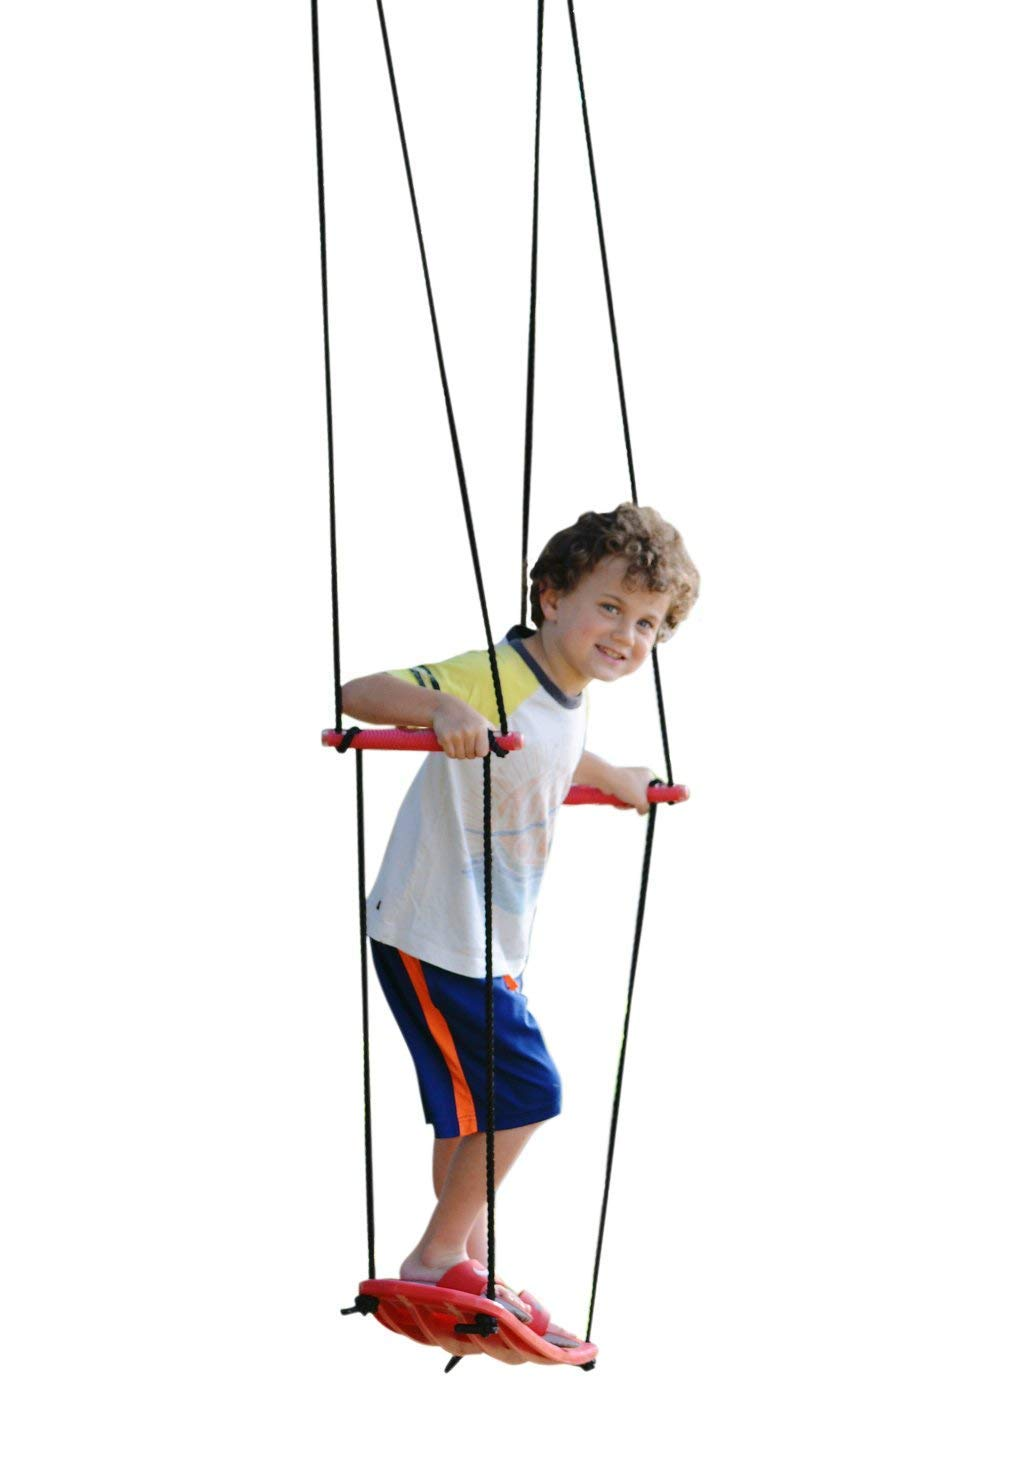 Swurfer Kick Stand Up Outdoor Surfing Tree Swing Kids Up to 150 Lbs - Hang from Up to 10 Feet High - Includes 24'' SwingBoard, UV Resistant Rope, & Handles by Swurfer